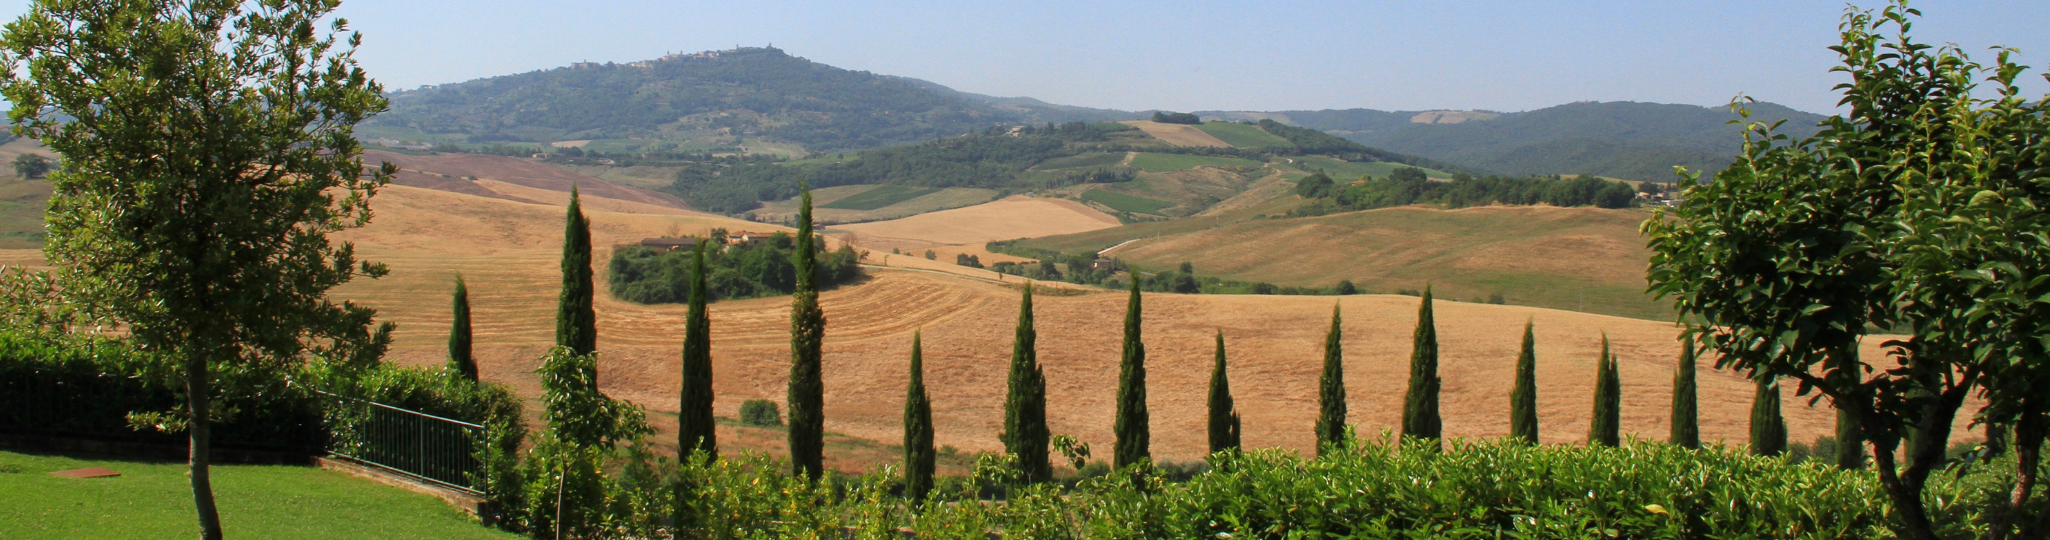 The Dreamscape of Tuscany on Foot